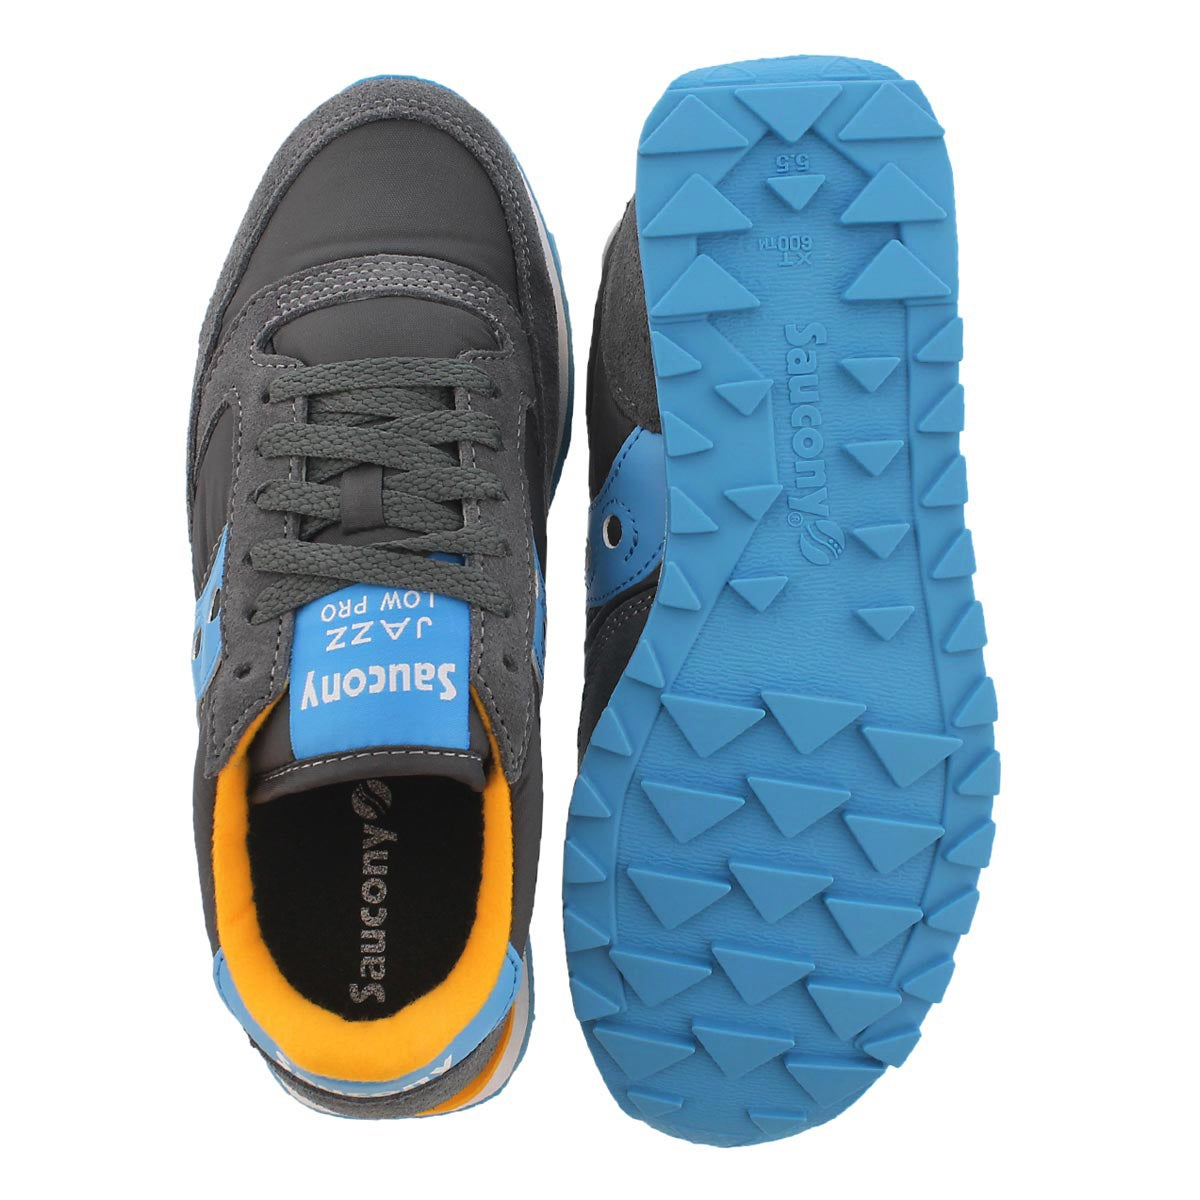 Lds Jazz Low Pro char lace up sneaker